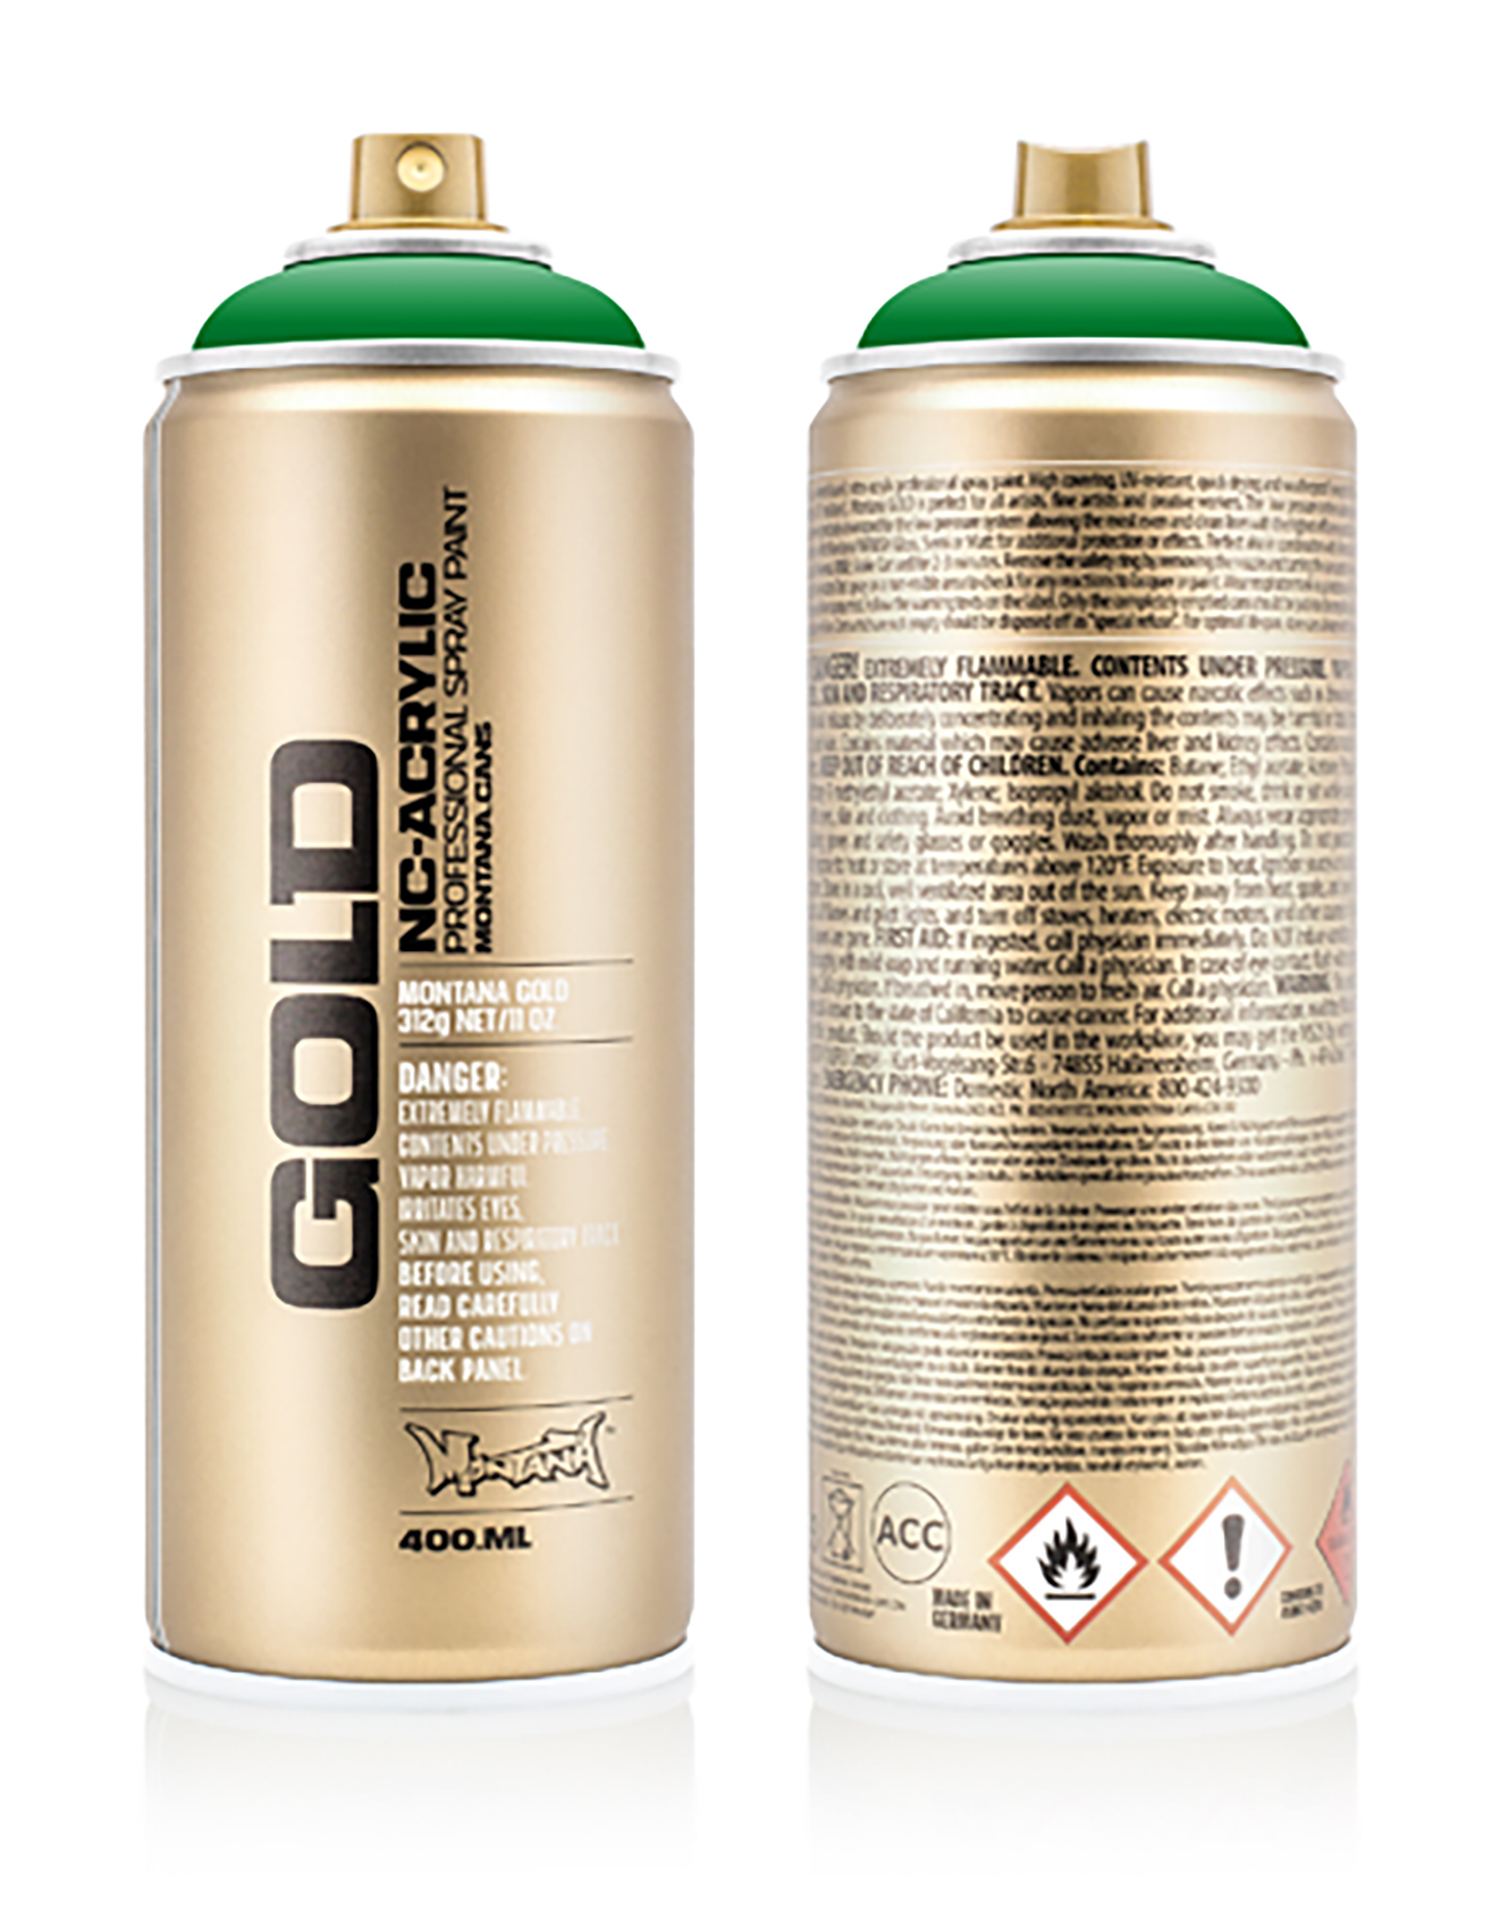 MONTANA-GOLD-SPRAY-400ML-G-6050